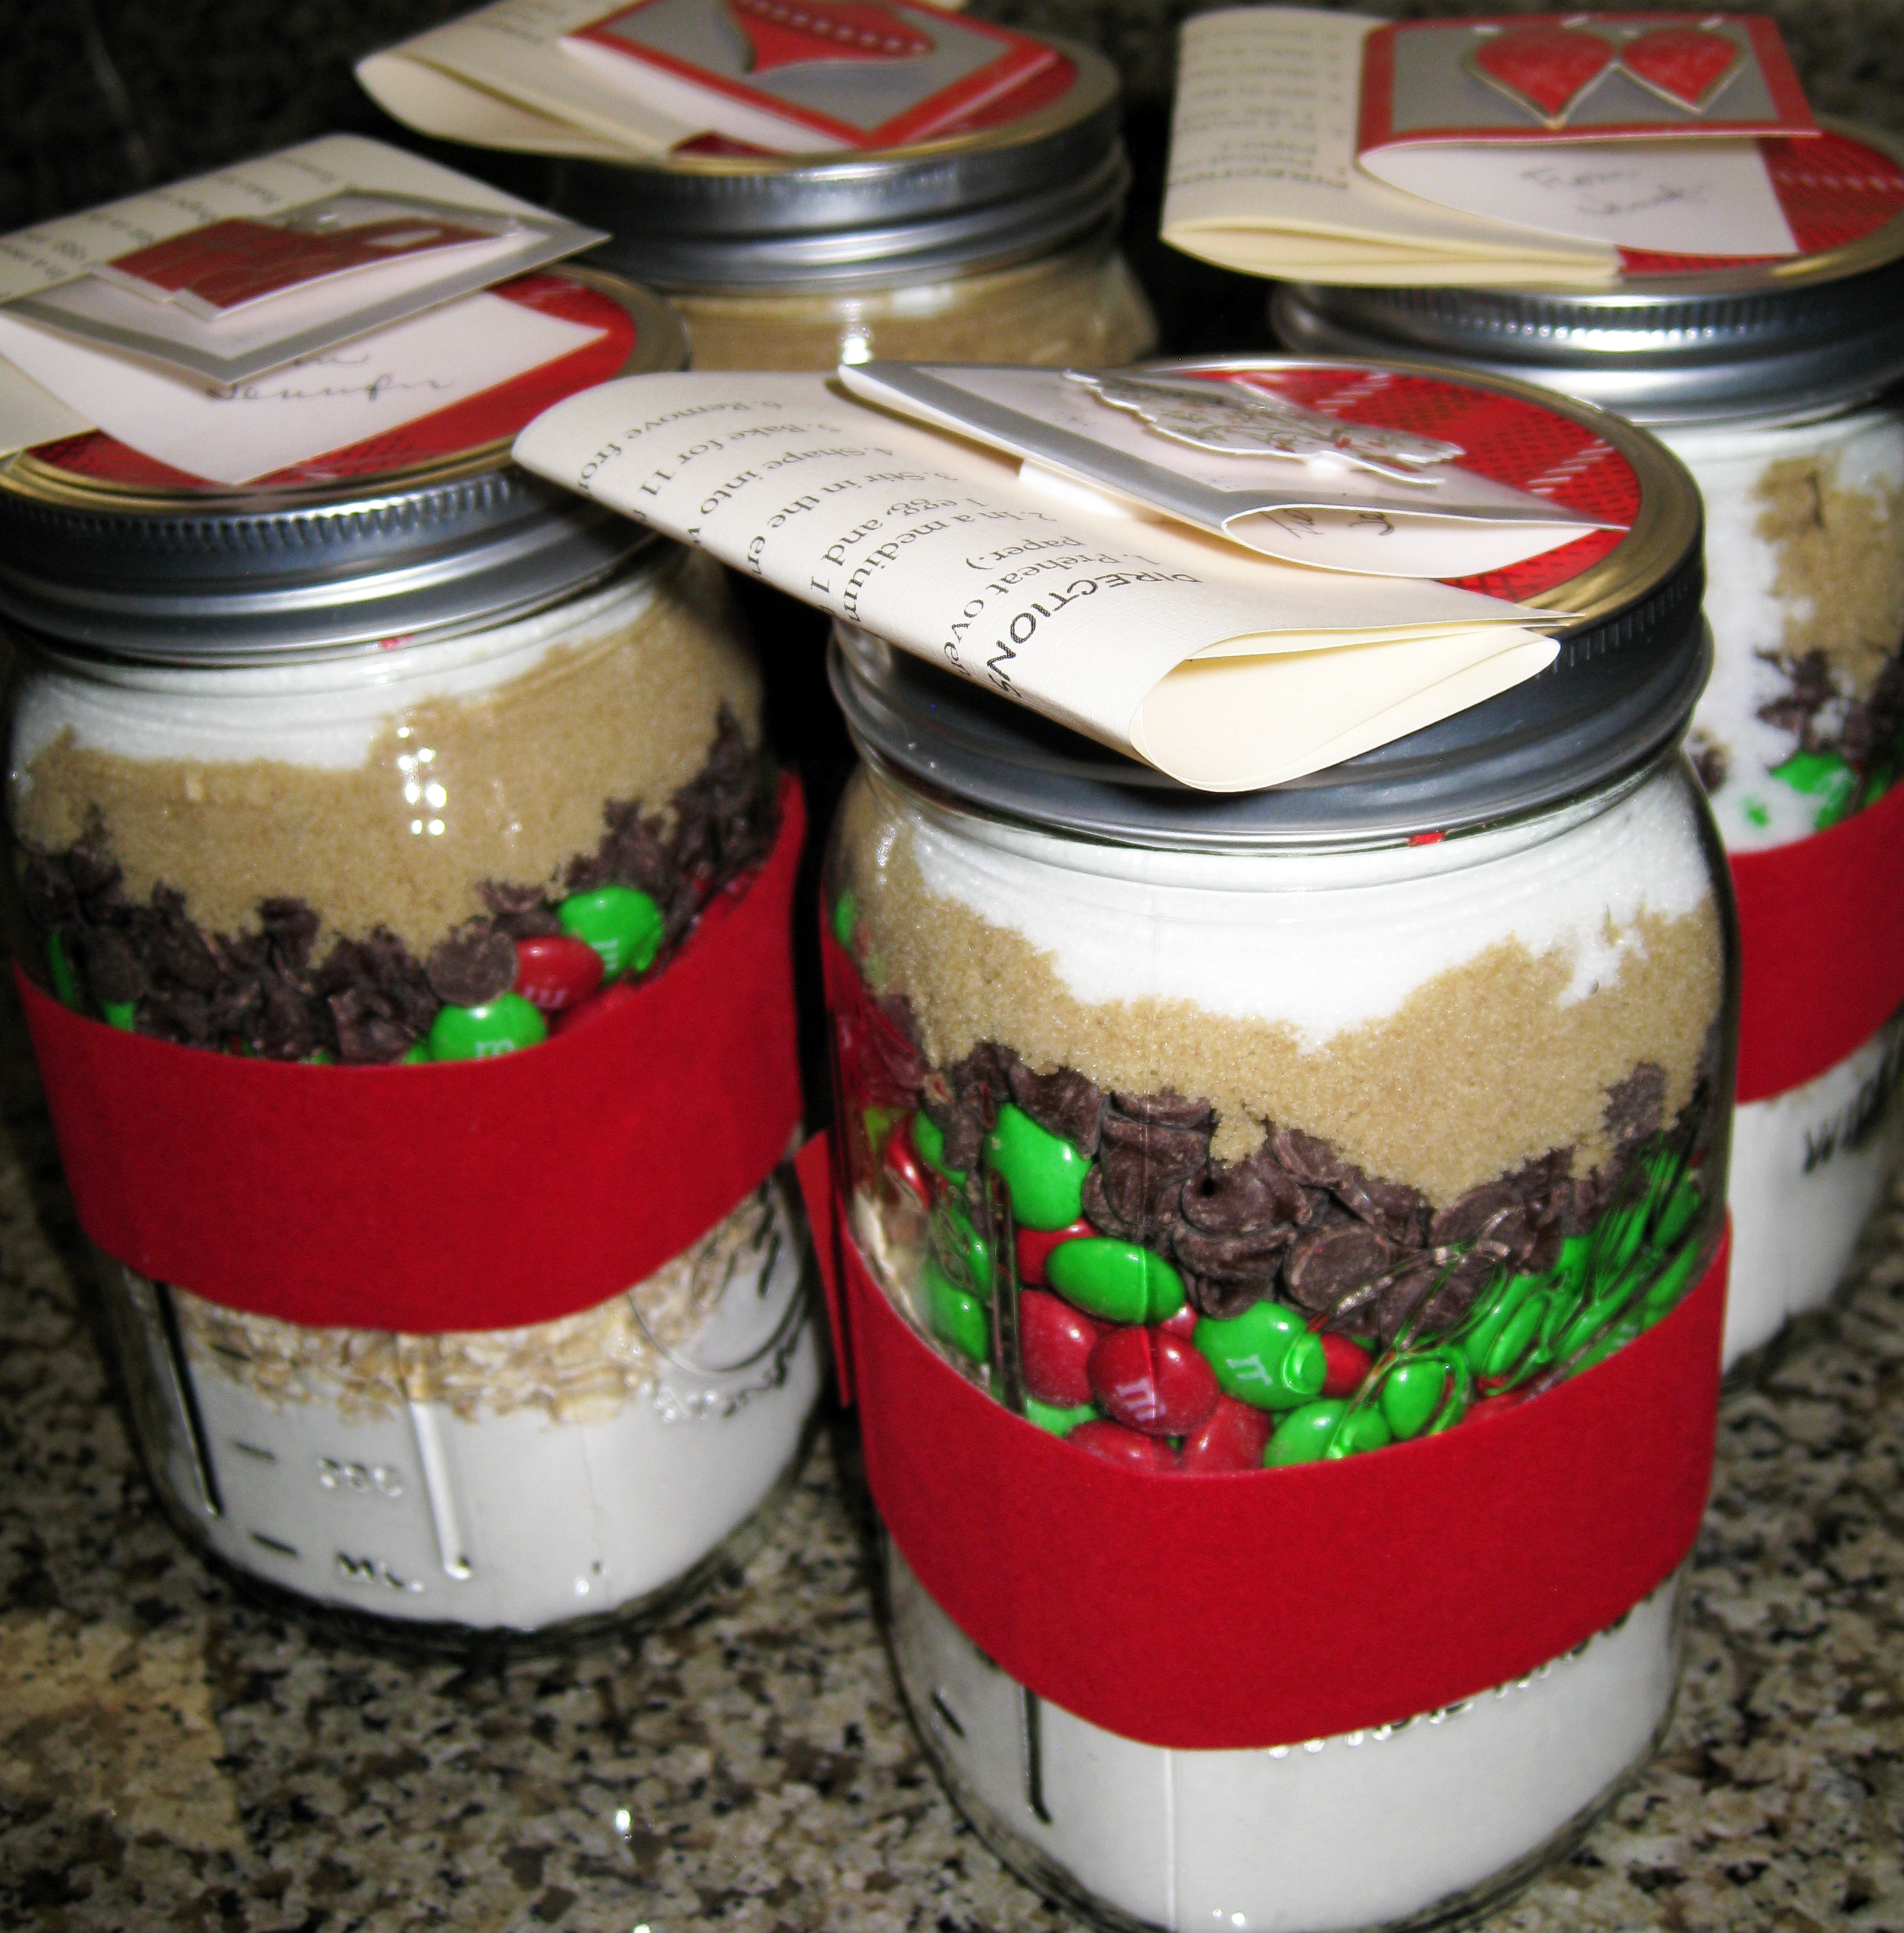 Homemade Gift Jars and Cookies